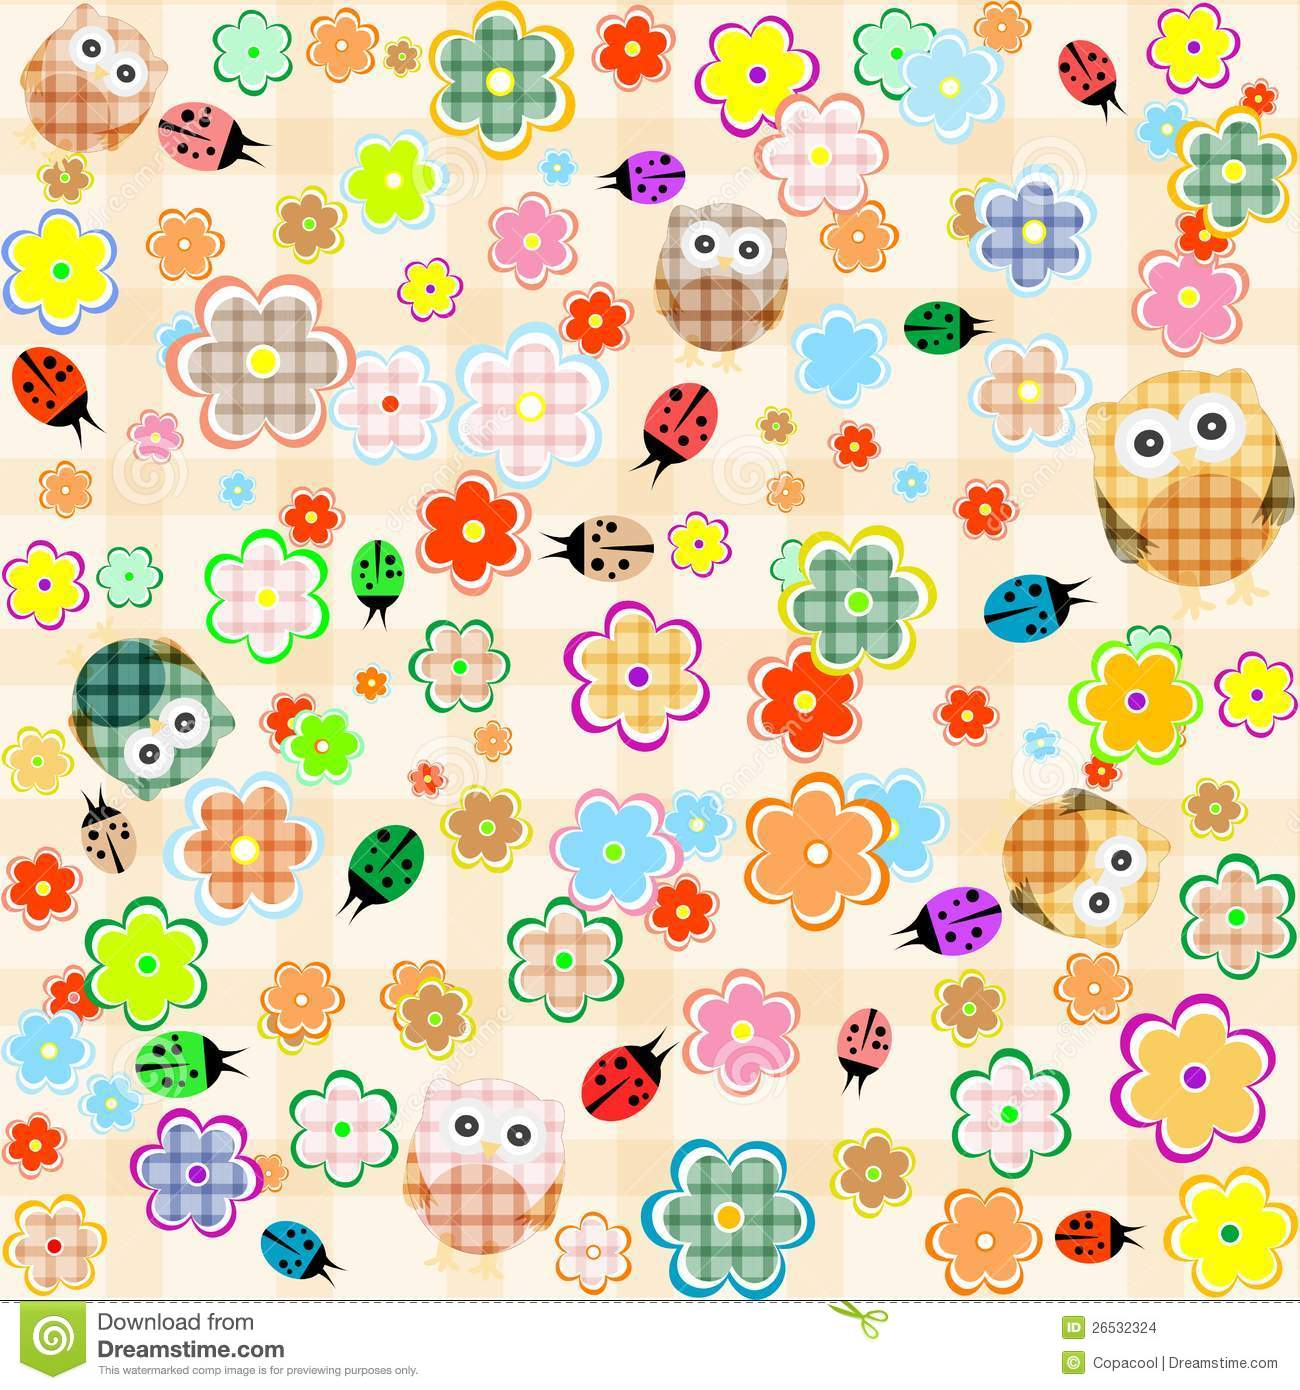 Free Owl Wallpapers: Seamless Flower And Owl Background. Vector Pattern Stock